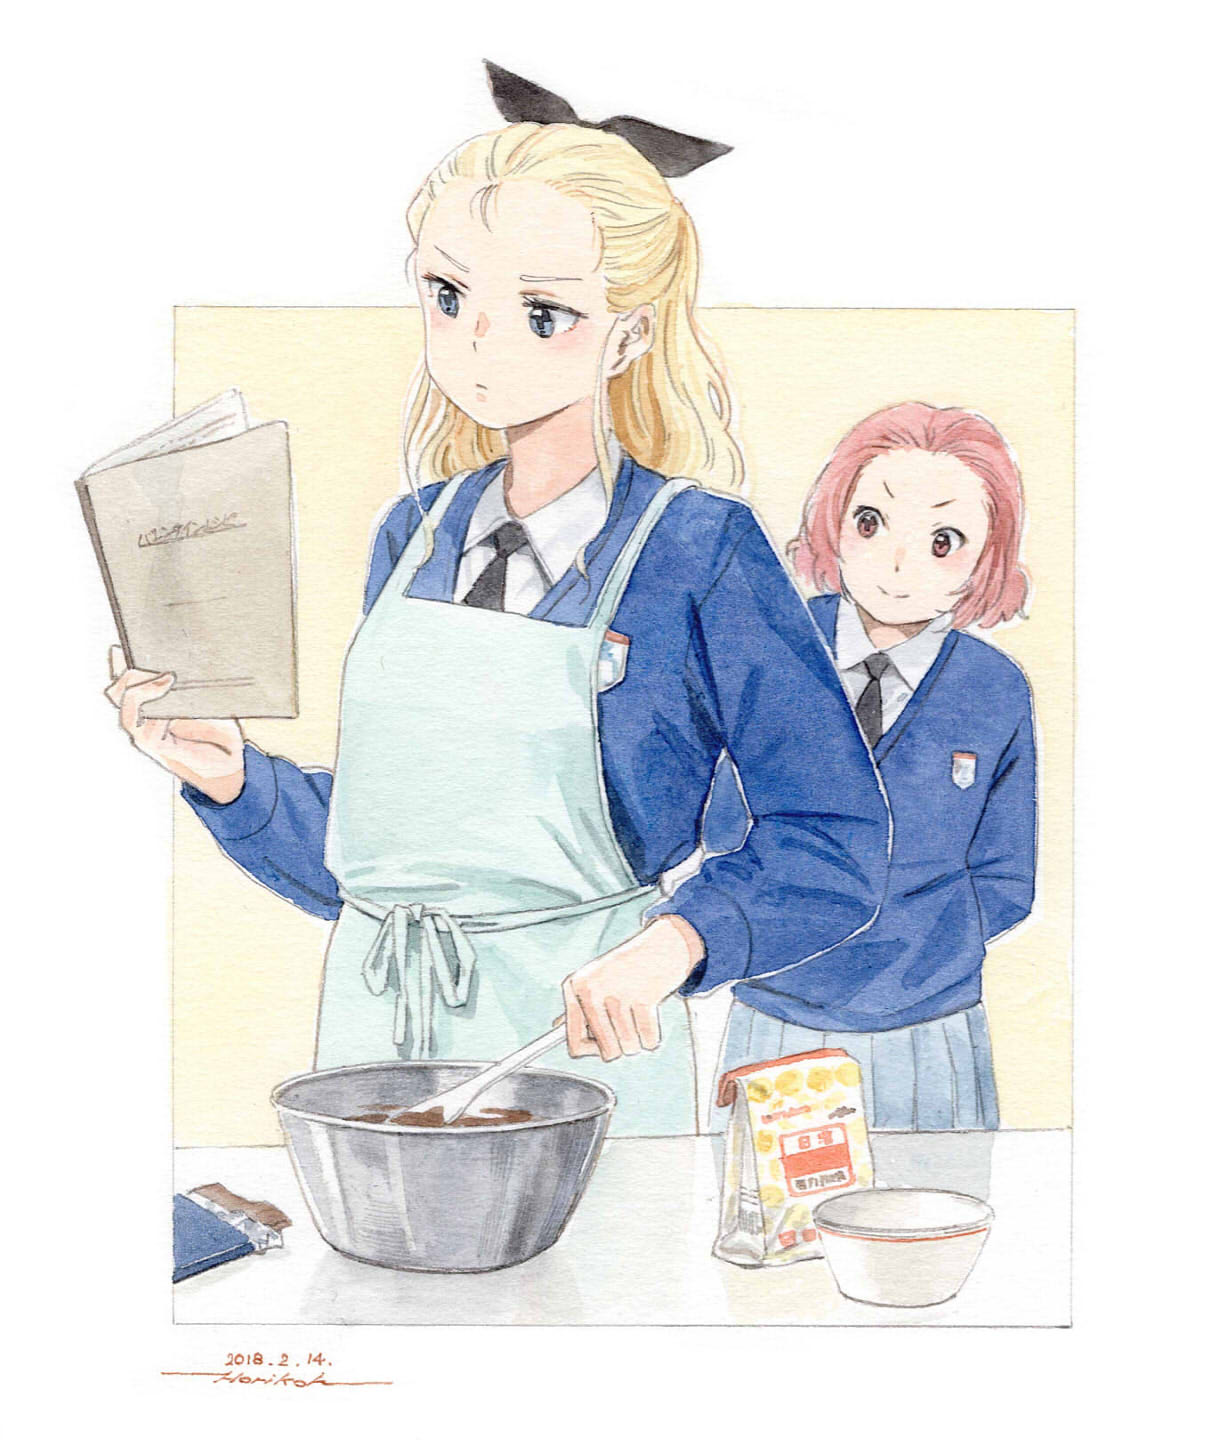 2girls apron arms_behind_back assam black_neckwear black_ribbon blonde_hair blue_apron blue_eyes blue_skirt blue_sweater book bowl brown_eyes chocolate closed_mouth commentary cooking dress_shirt emblem frown girls_und_panzer hair_pulled_back hair_ribbon highres holding holding_book holding_spatula horikou leaning_to_the_side long_hair long_sleeves looking_at_another medium_hair multiple_girls necktie outside_border pleated_skirt redhead ribbon rosehip school_uniform shirt skirt smile spatula st._gloriana's_(emblem) st._gloriana's_school_uniform standing sweater traditional_media v-neck valentine white_shirt wing_collar